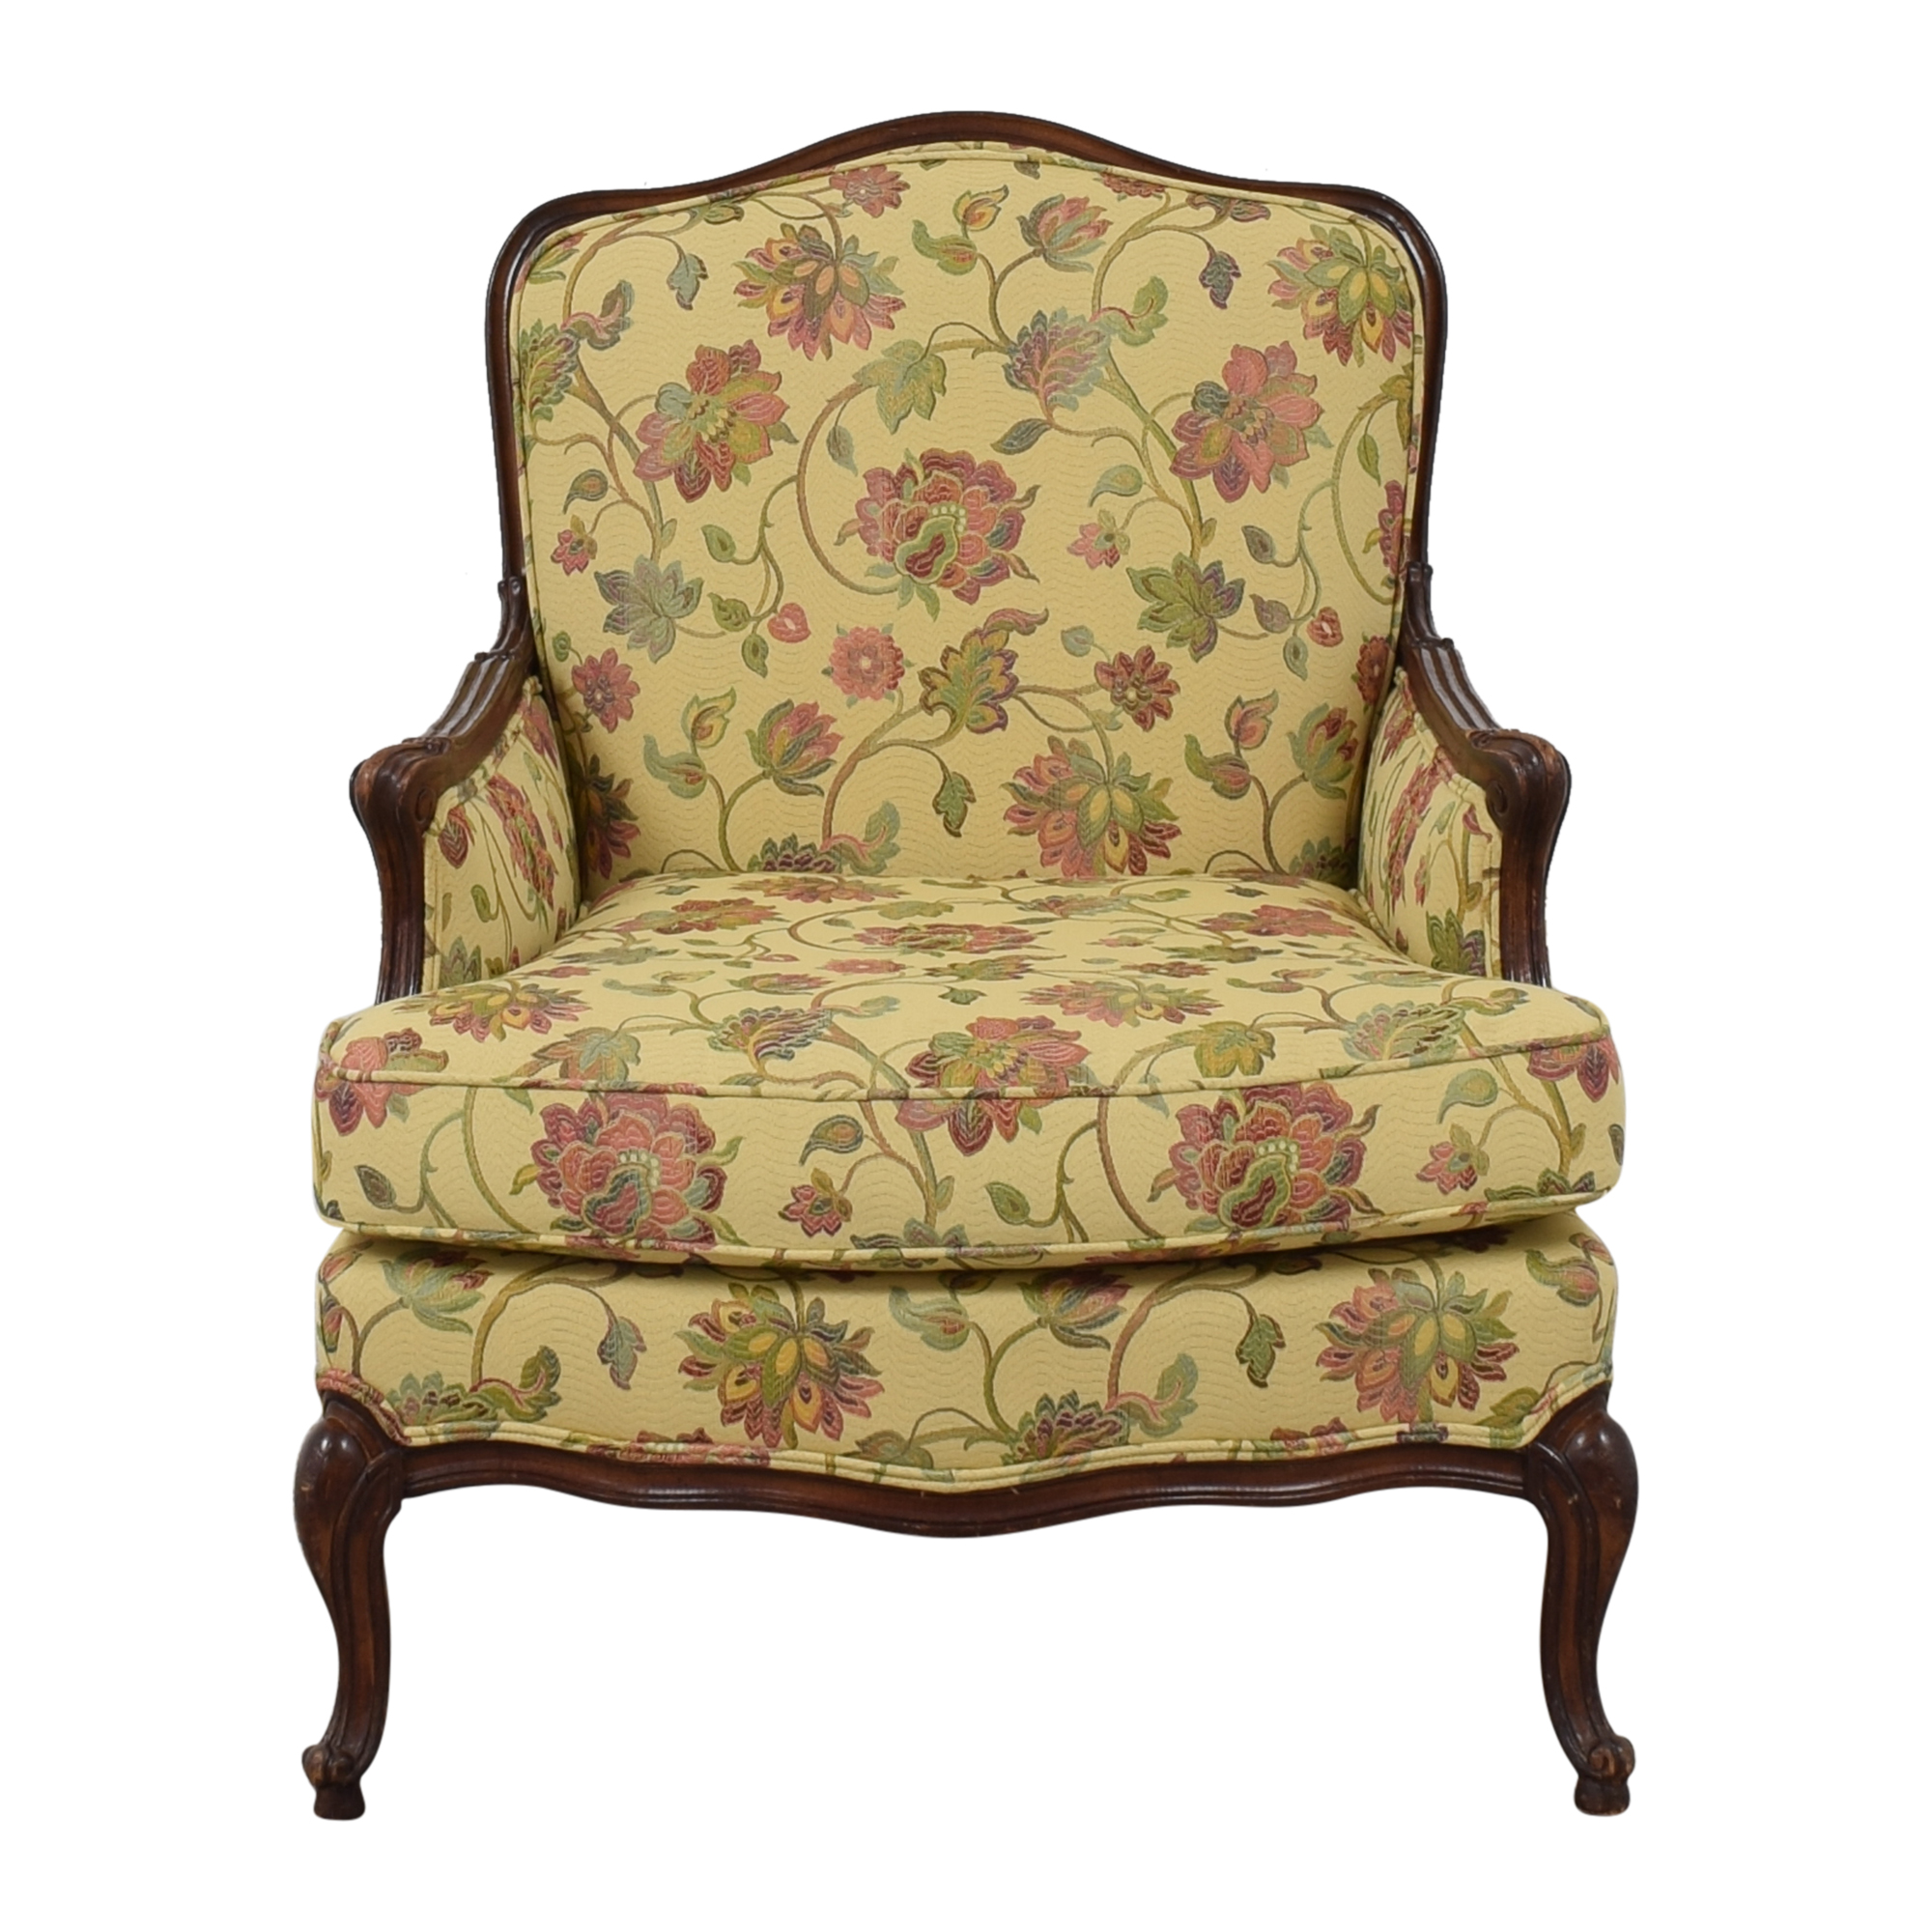 Kindel French Country Bergere Chair / Accent Chairs